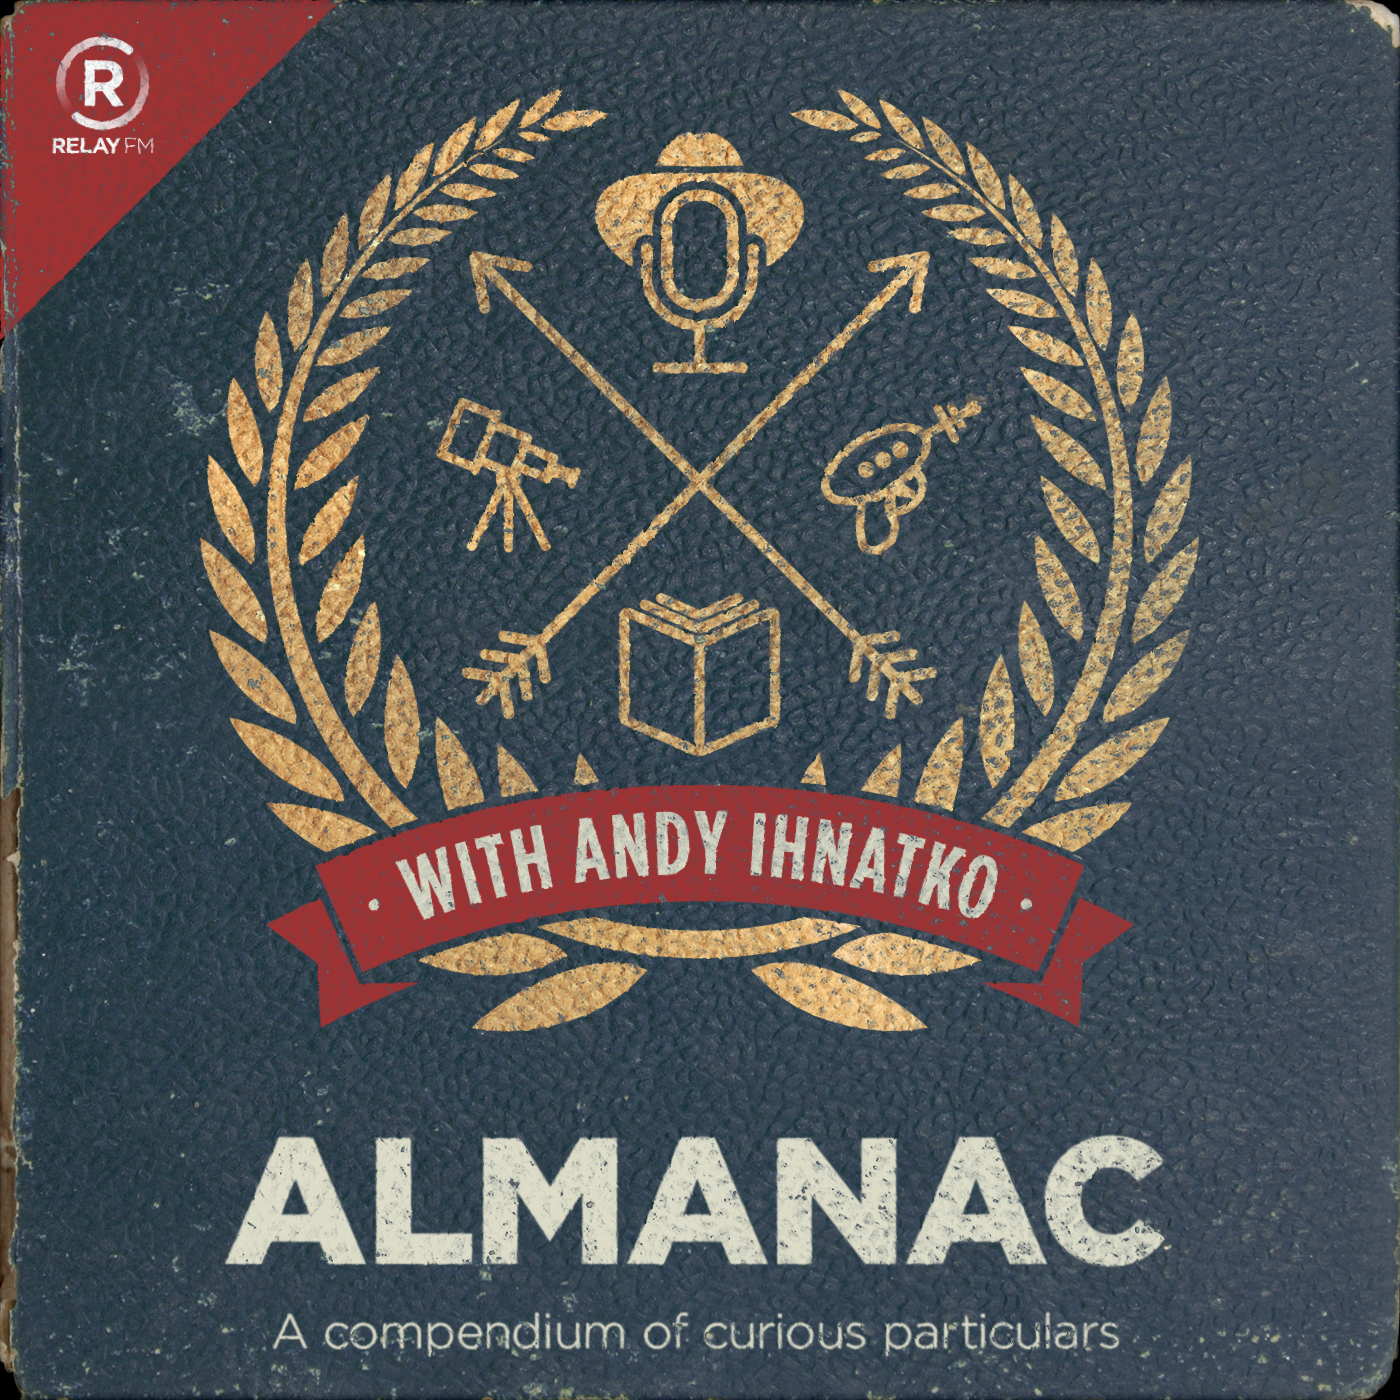 Broadcast artwork almanac artwork